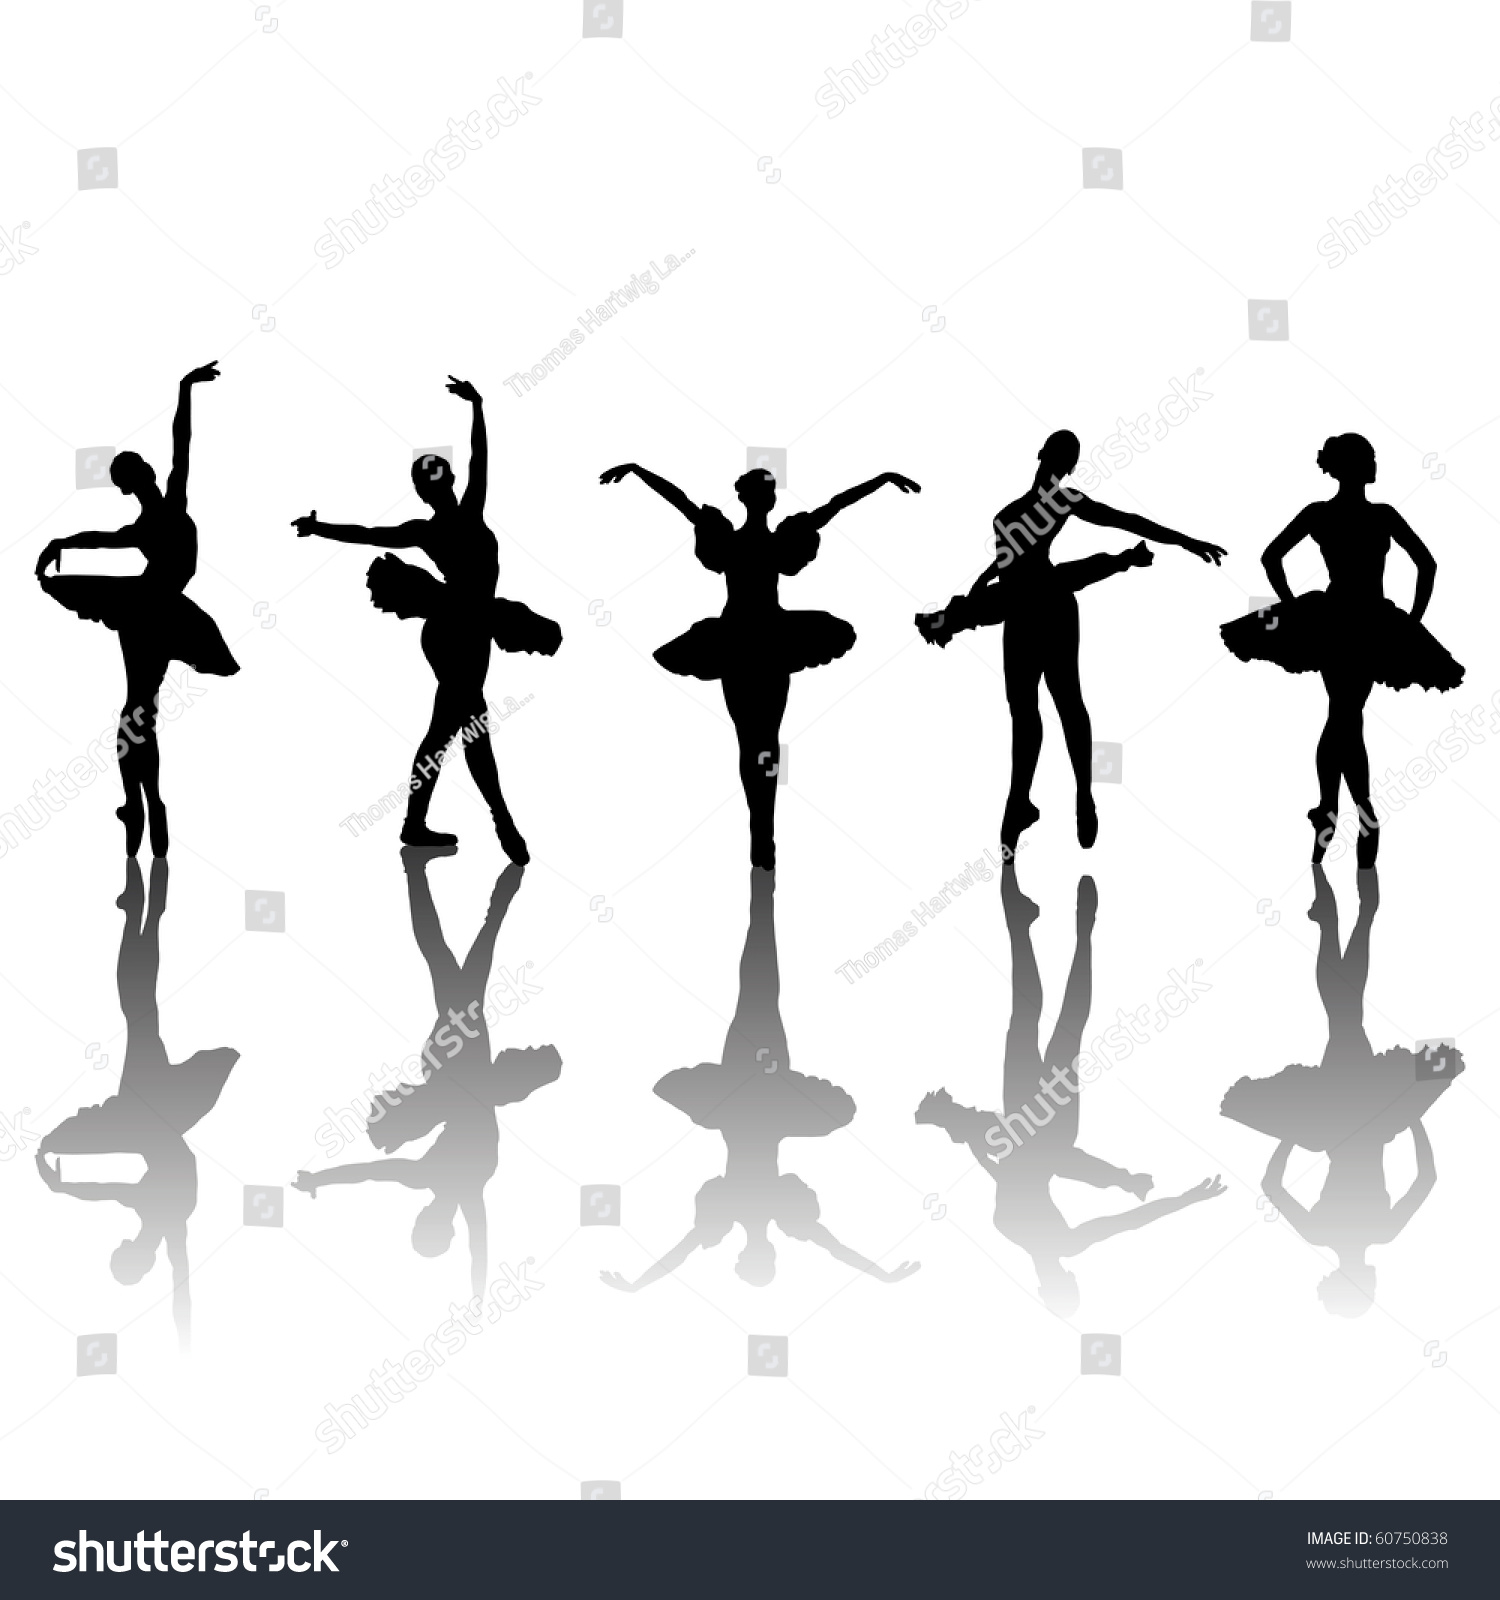 """comparing and contrasting jazz choreographers Is he our greatest native-born dance classicist or an artist of the second rank, or  both  music by bach), while not without interest, cannot bear serious  comparison  robbins, by contrast, is a no less ideal example of schiller's """" sentimental""""."""